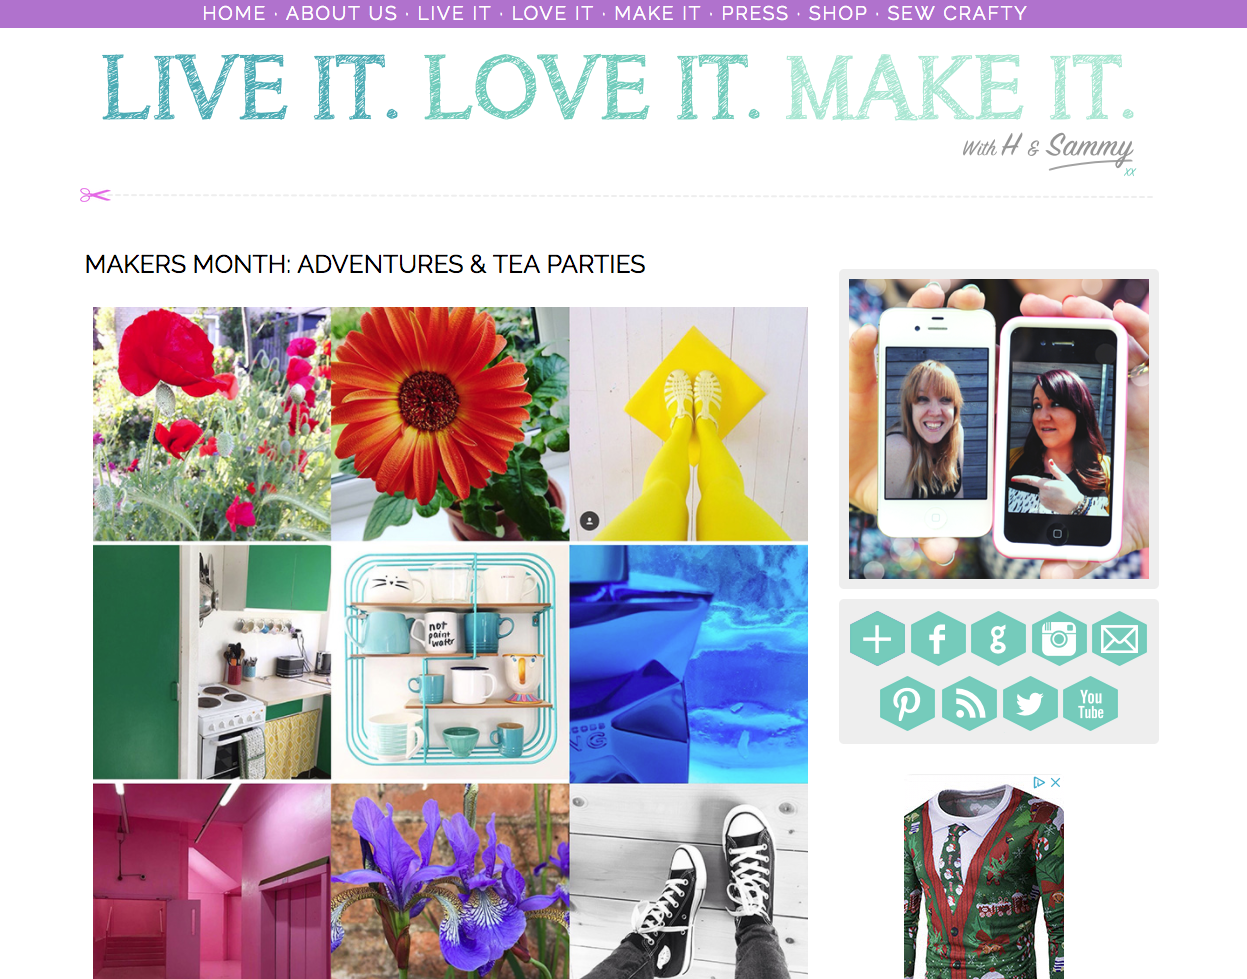 liveitloveitmakeit-feature